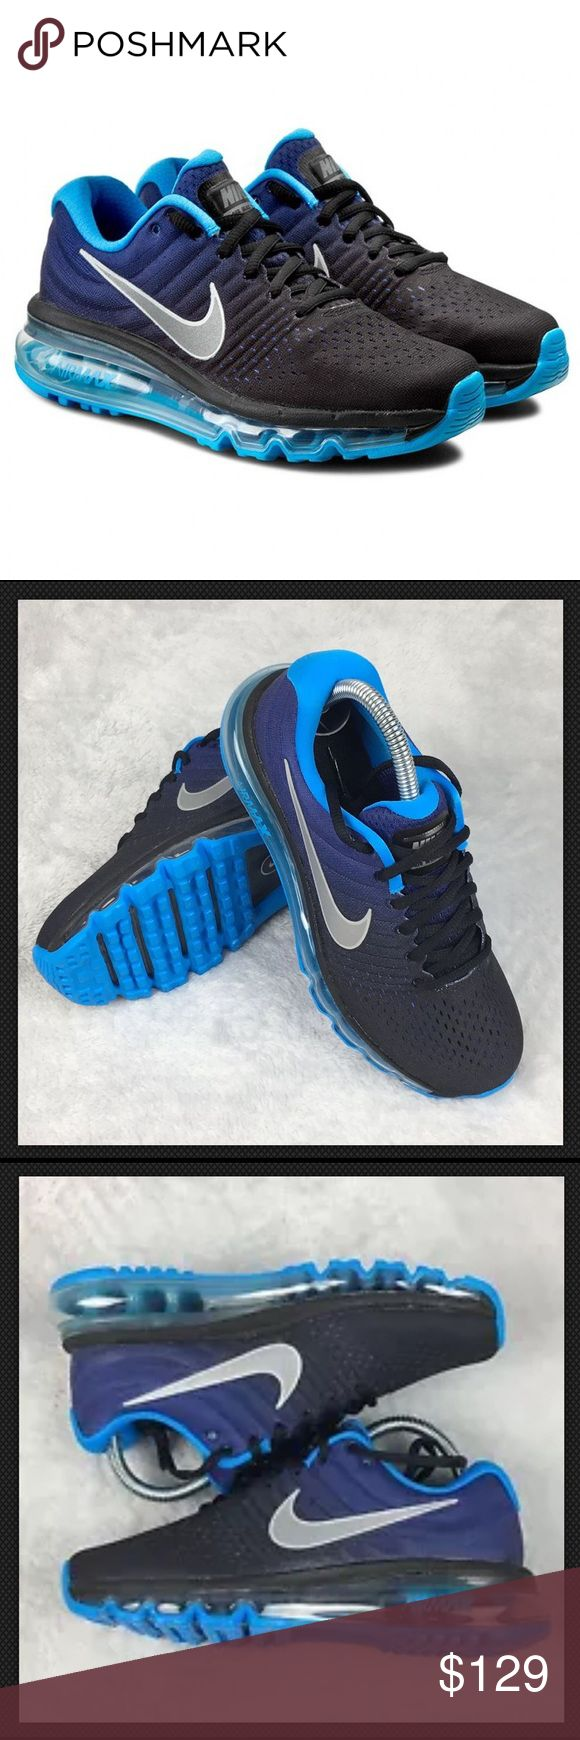 Nike Air Max 2017 Shoes Running Youth or Women NEW Size: 6.5, Youth (also can fit Womens size 8.5)  Color: Black, Blue  Condition: New without Box, 100% Authentic  We reserve the right to change shipping carriers and types as needed. Nike Shoes Sneakers